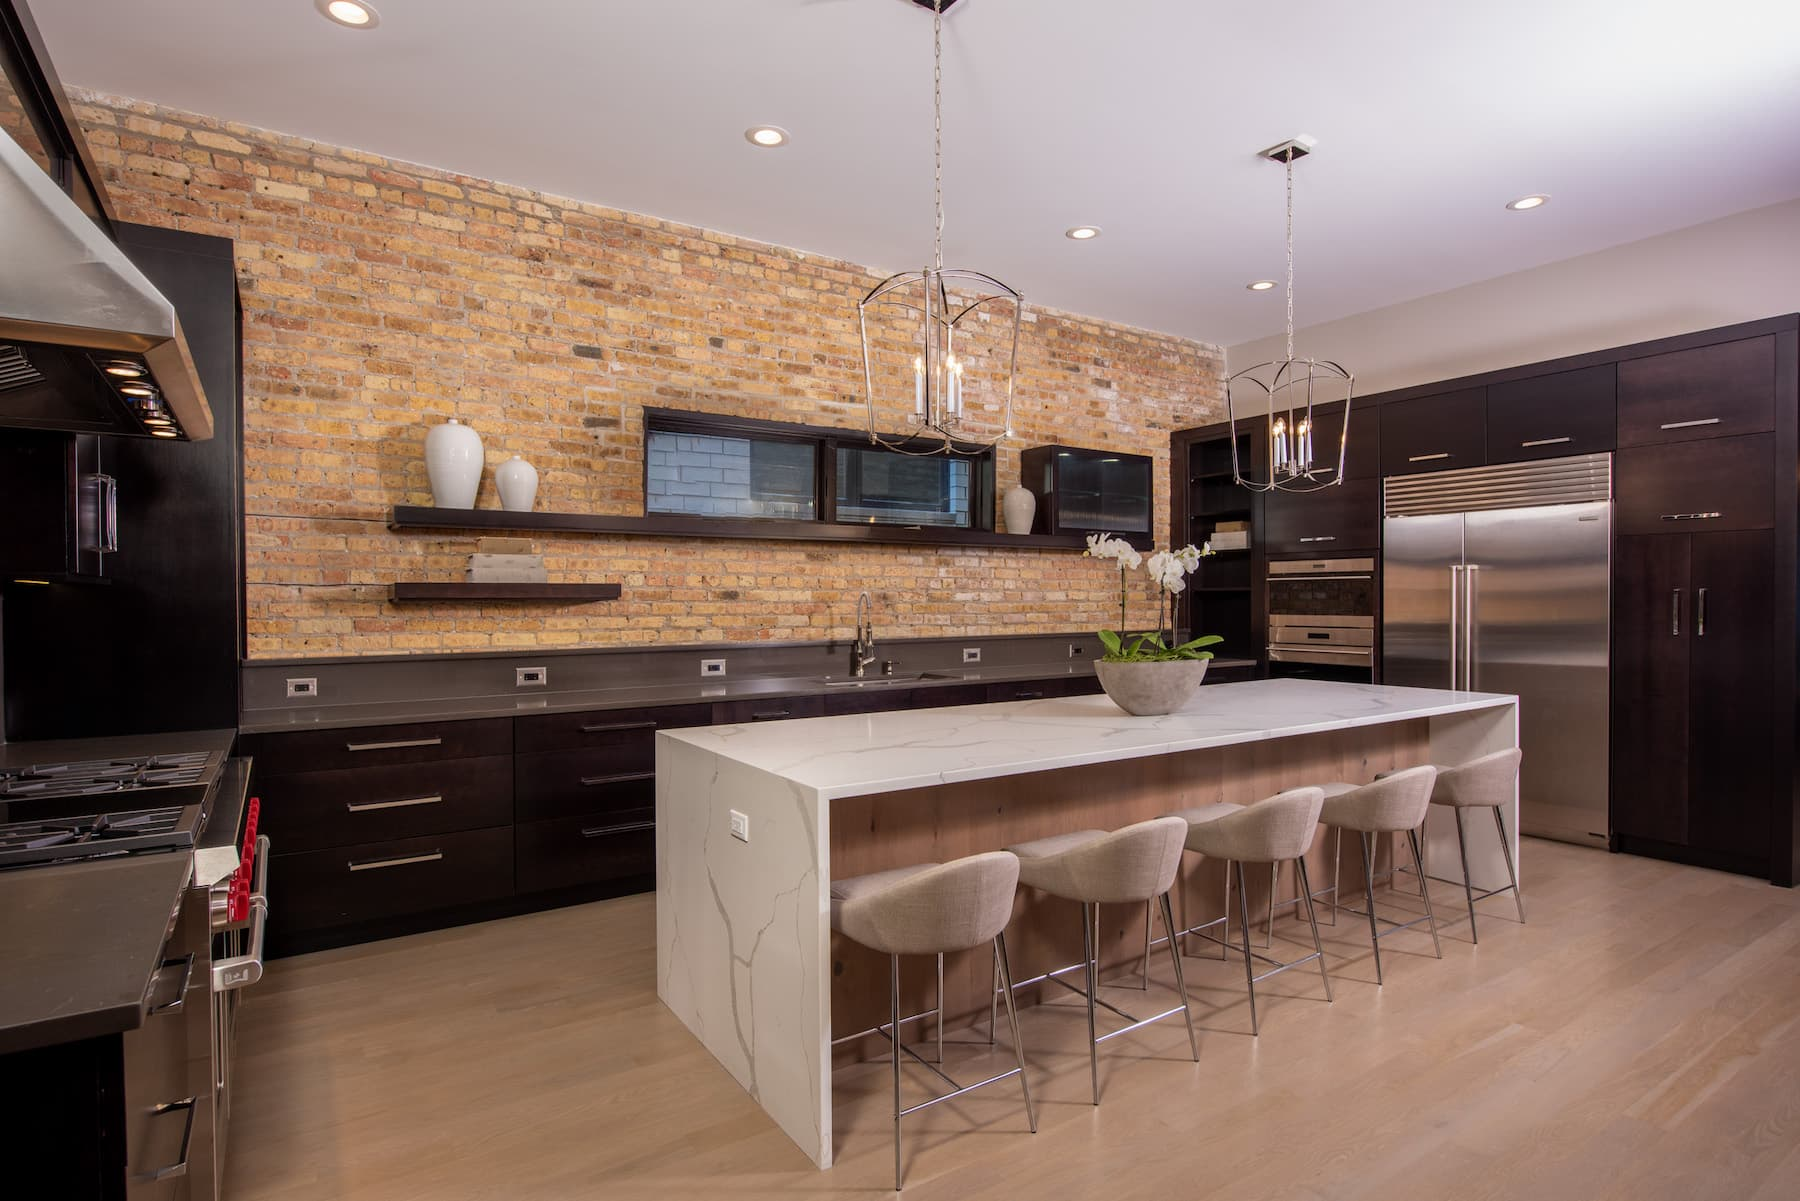 Island Countertops New Cabinets Lincoln Park Chicago